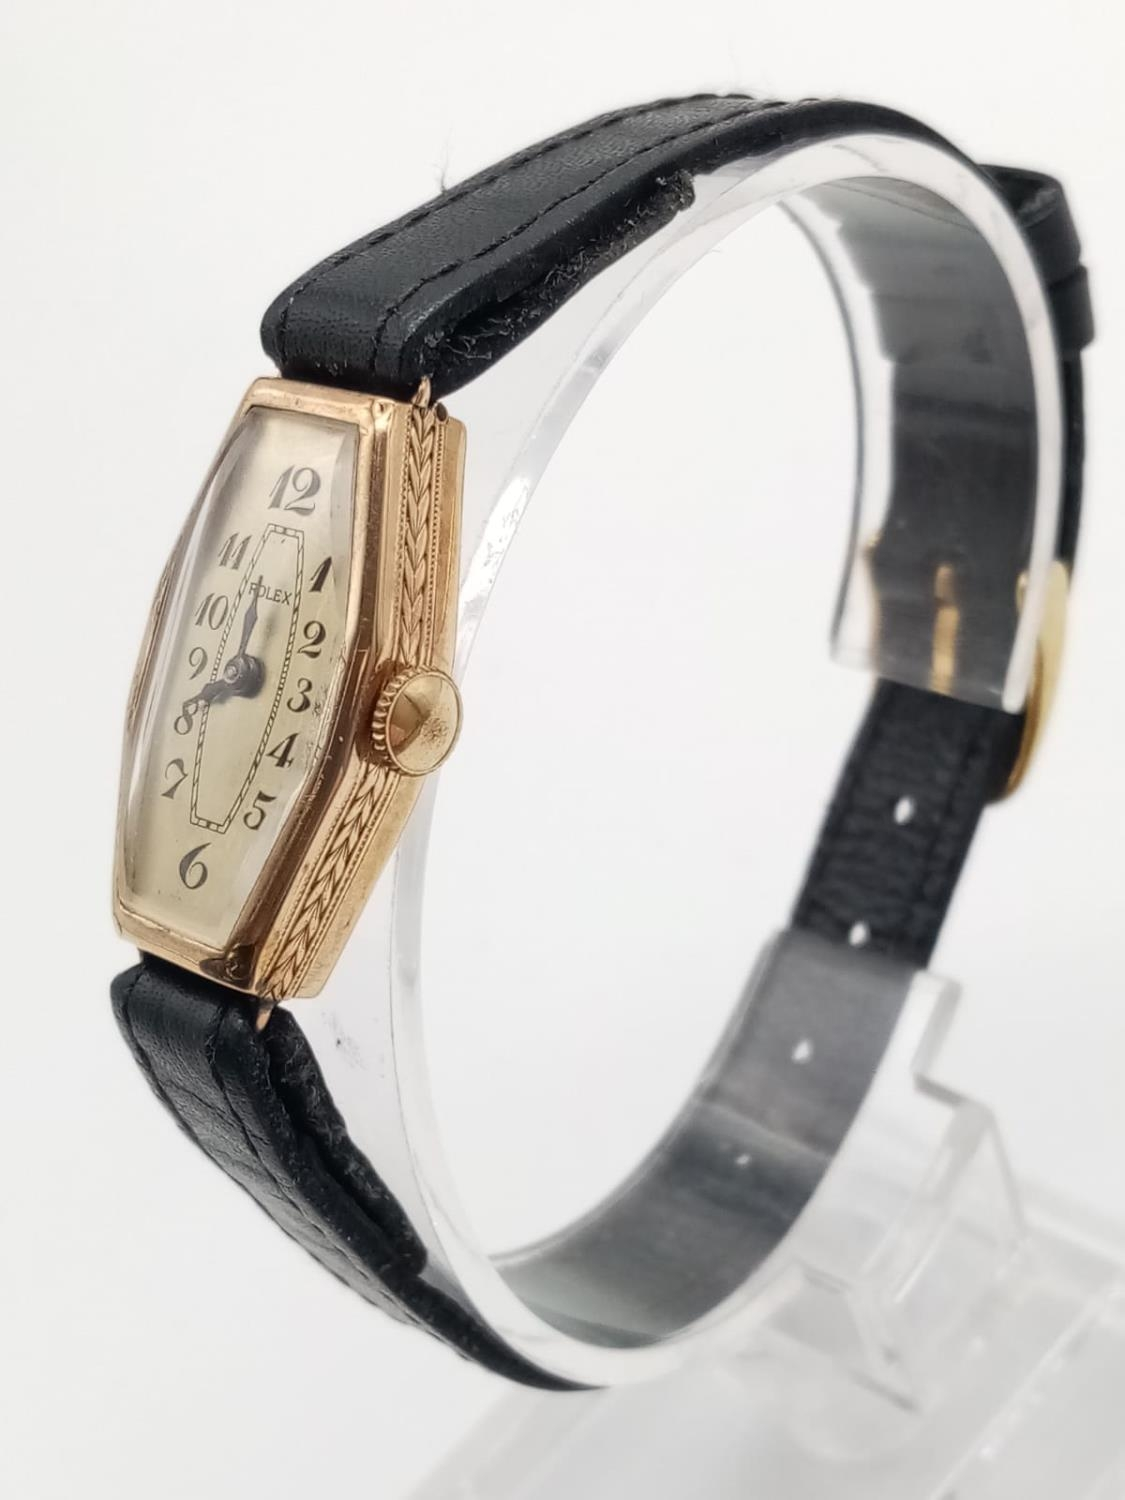 VINTAGE ROLEX 9K GOLD LADIES WRIST WATCH ON LEATHER STRAP. 16MM FWO - Image 2 of 6